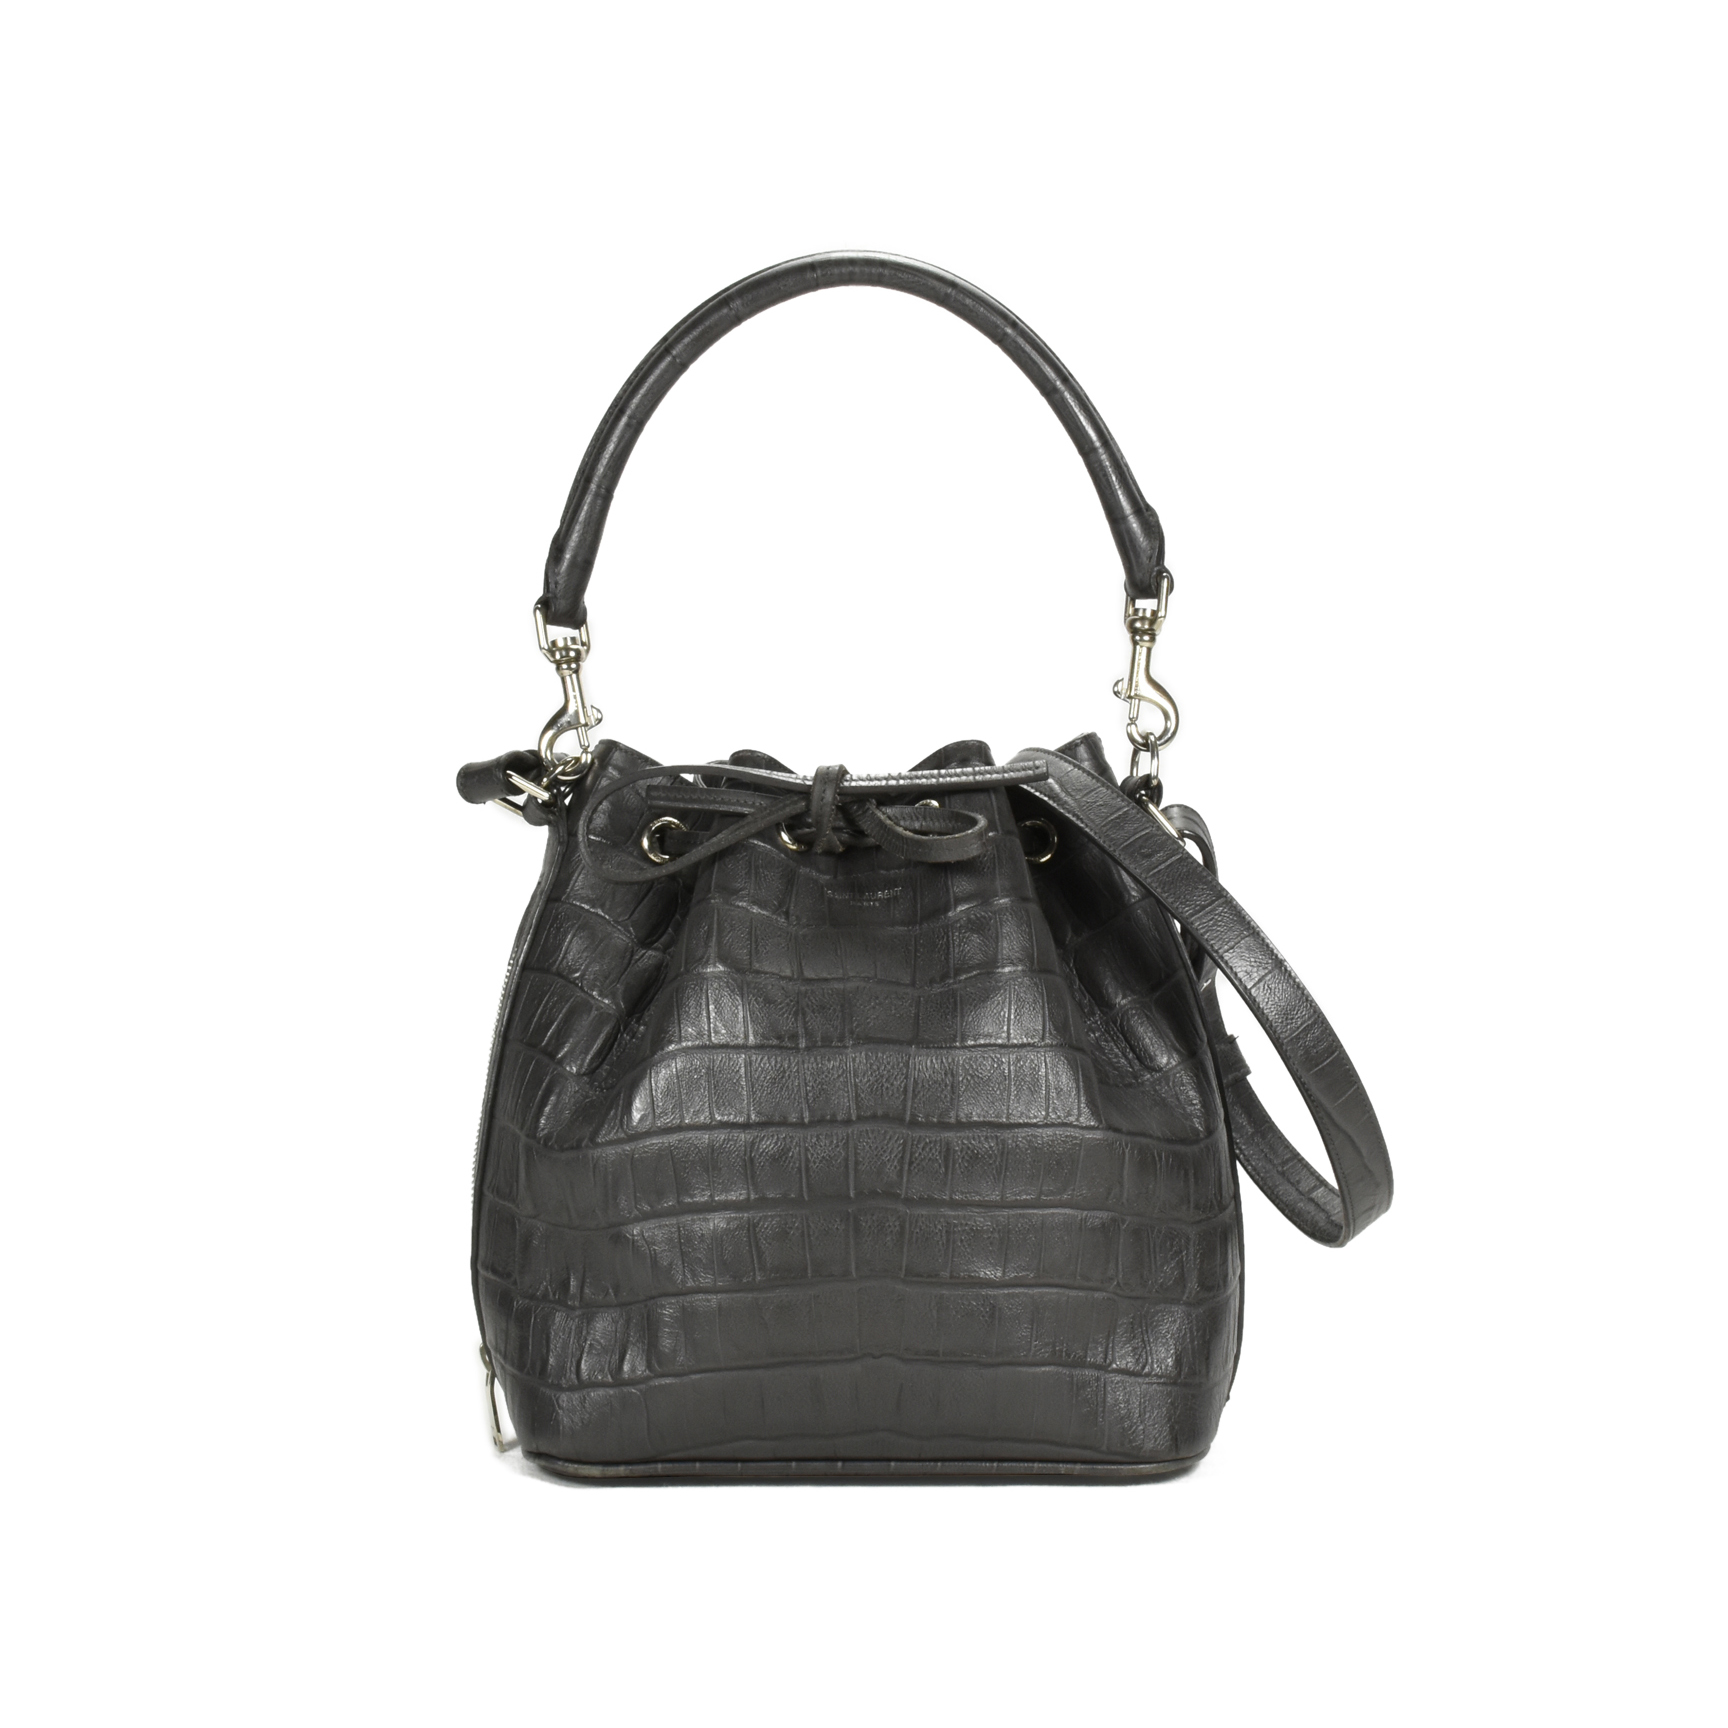 66b06a14bf7 Authentic Second Hand Saint Laurent Emmanuelle Bucket Bag (PSS-048-00084) -  THE FIFTH COLLECTION